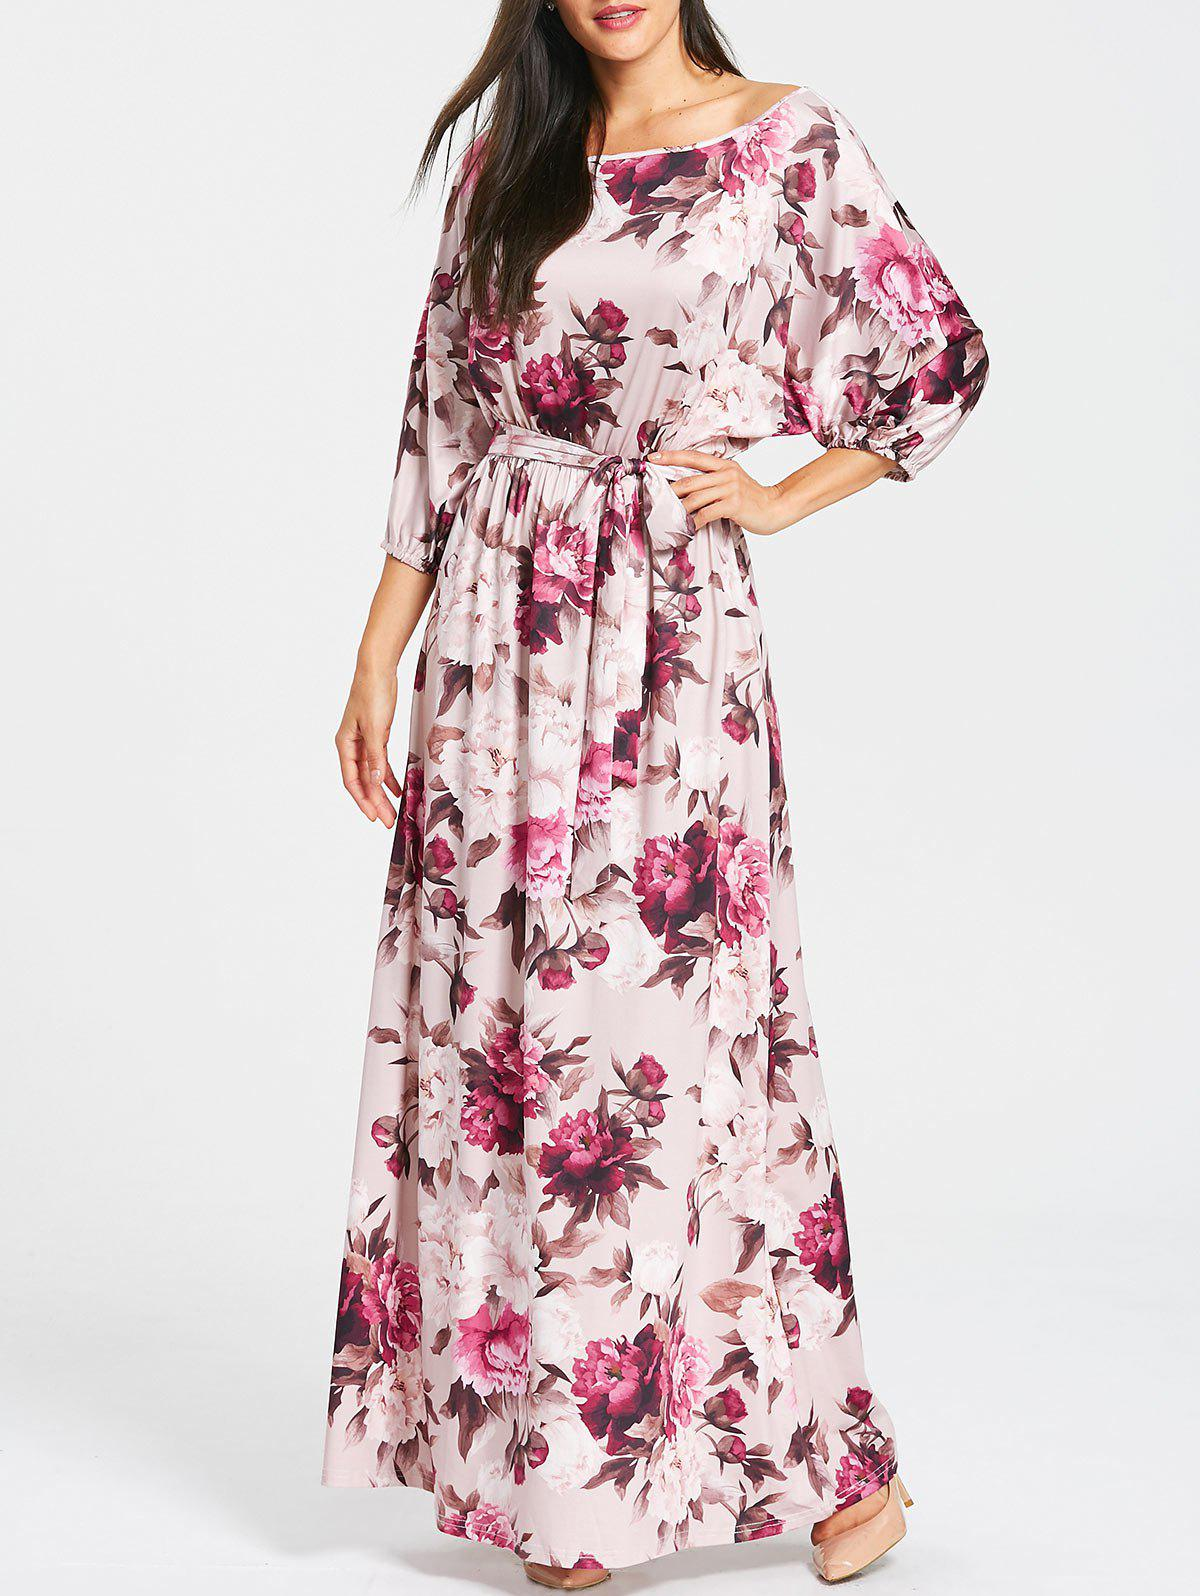 New Floral Print Batwing Sleeve Maxi Dress